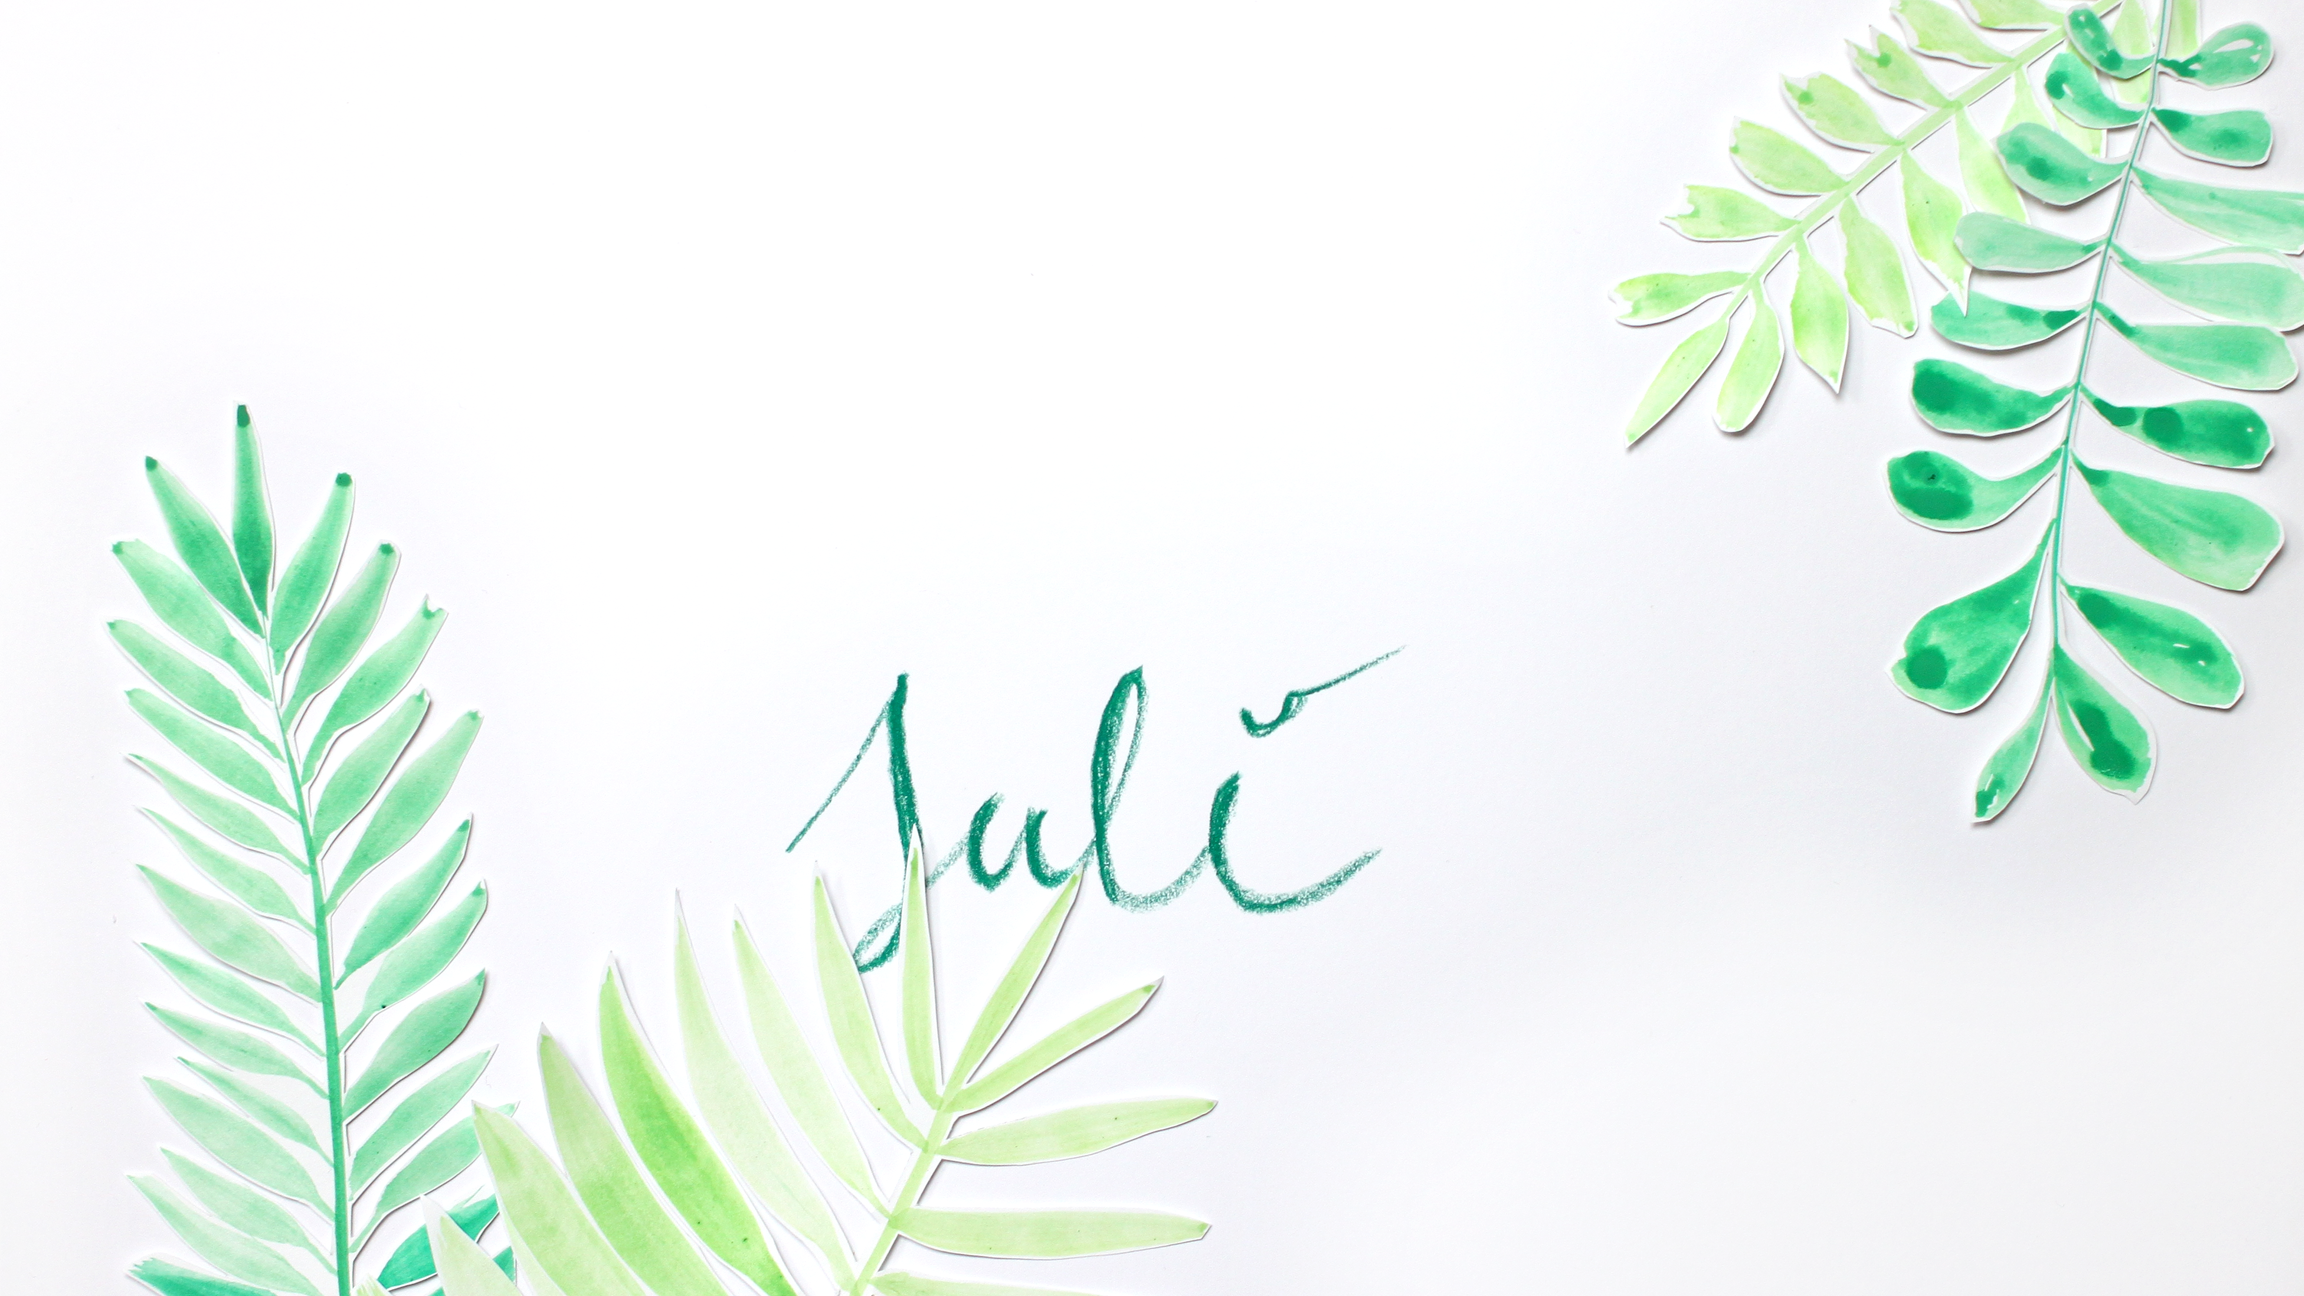 http://welovehandmade.at/2015/06/30/wallpaper-juli-3/